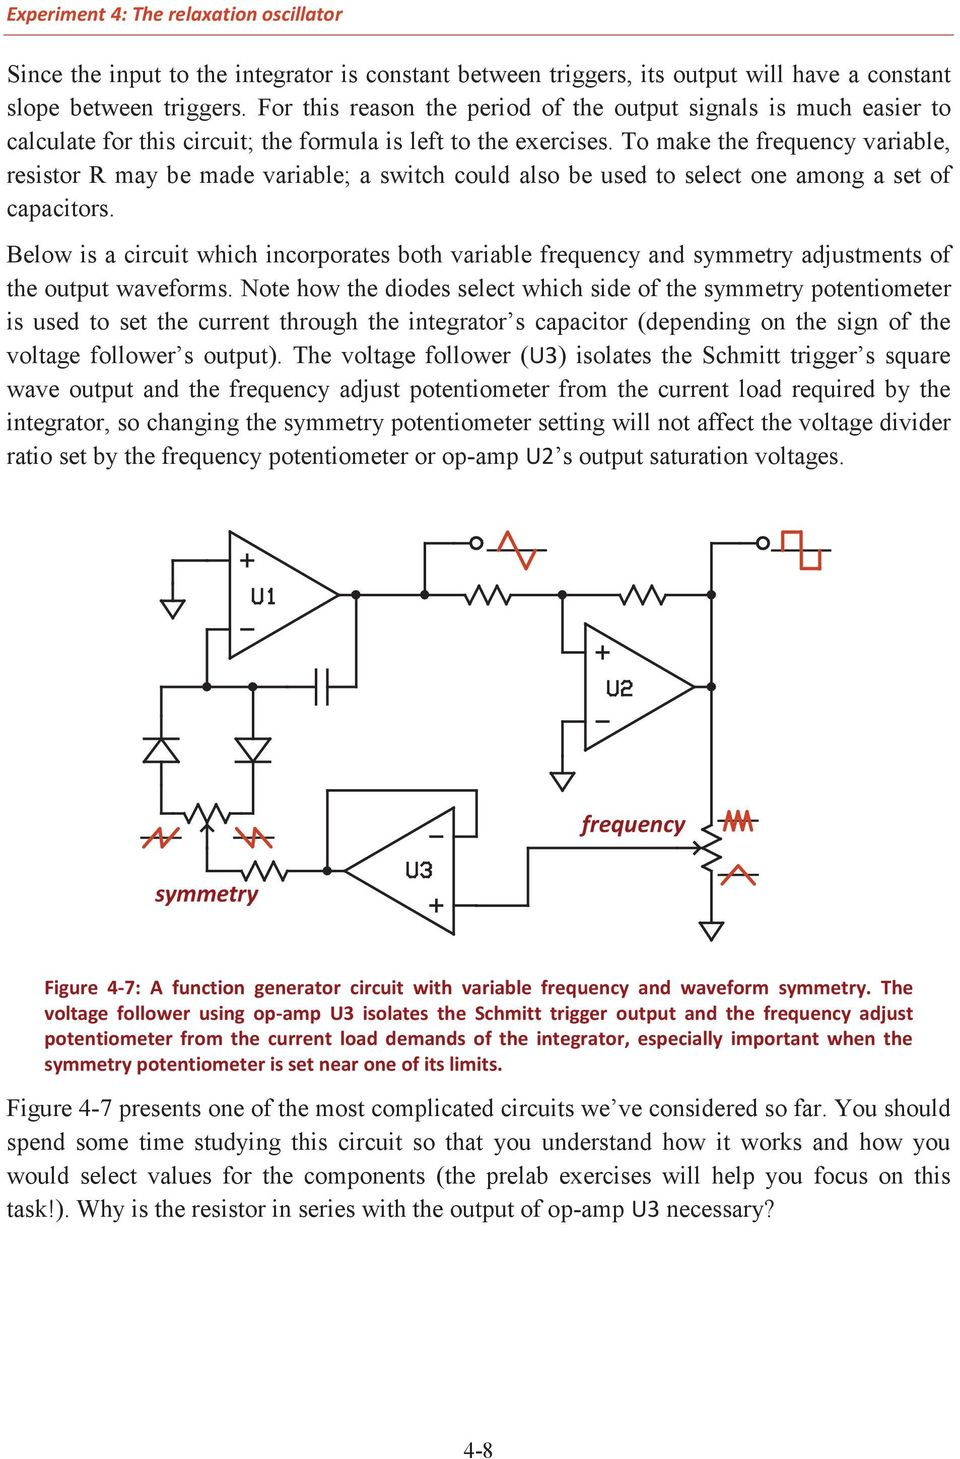 Comparators Positive Feedback And Relaxation Oscillators Pdf Circuits Gt Simple Example For The Lm386 Ic Audio Amplifier To Make Frequency Variable Resistor May Be Made A Switch Could Also